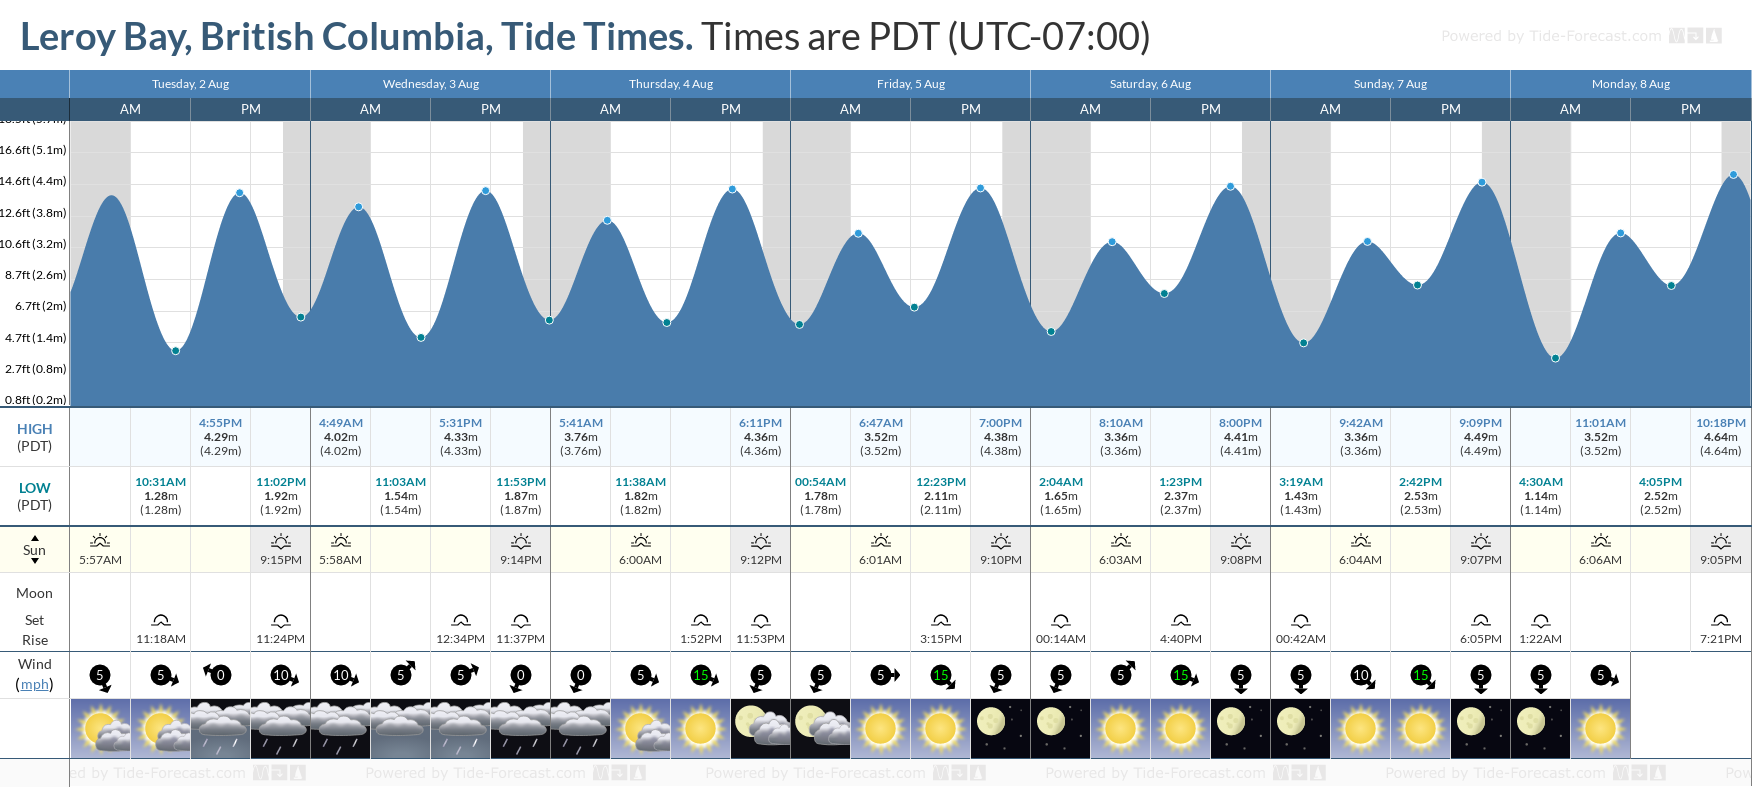 Leroy Bay, British Columbia Tide Chart including high and low tide tide times for the next 7 days